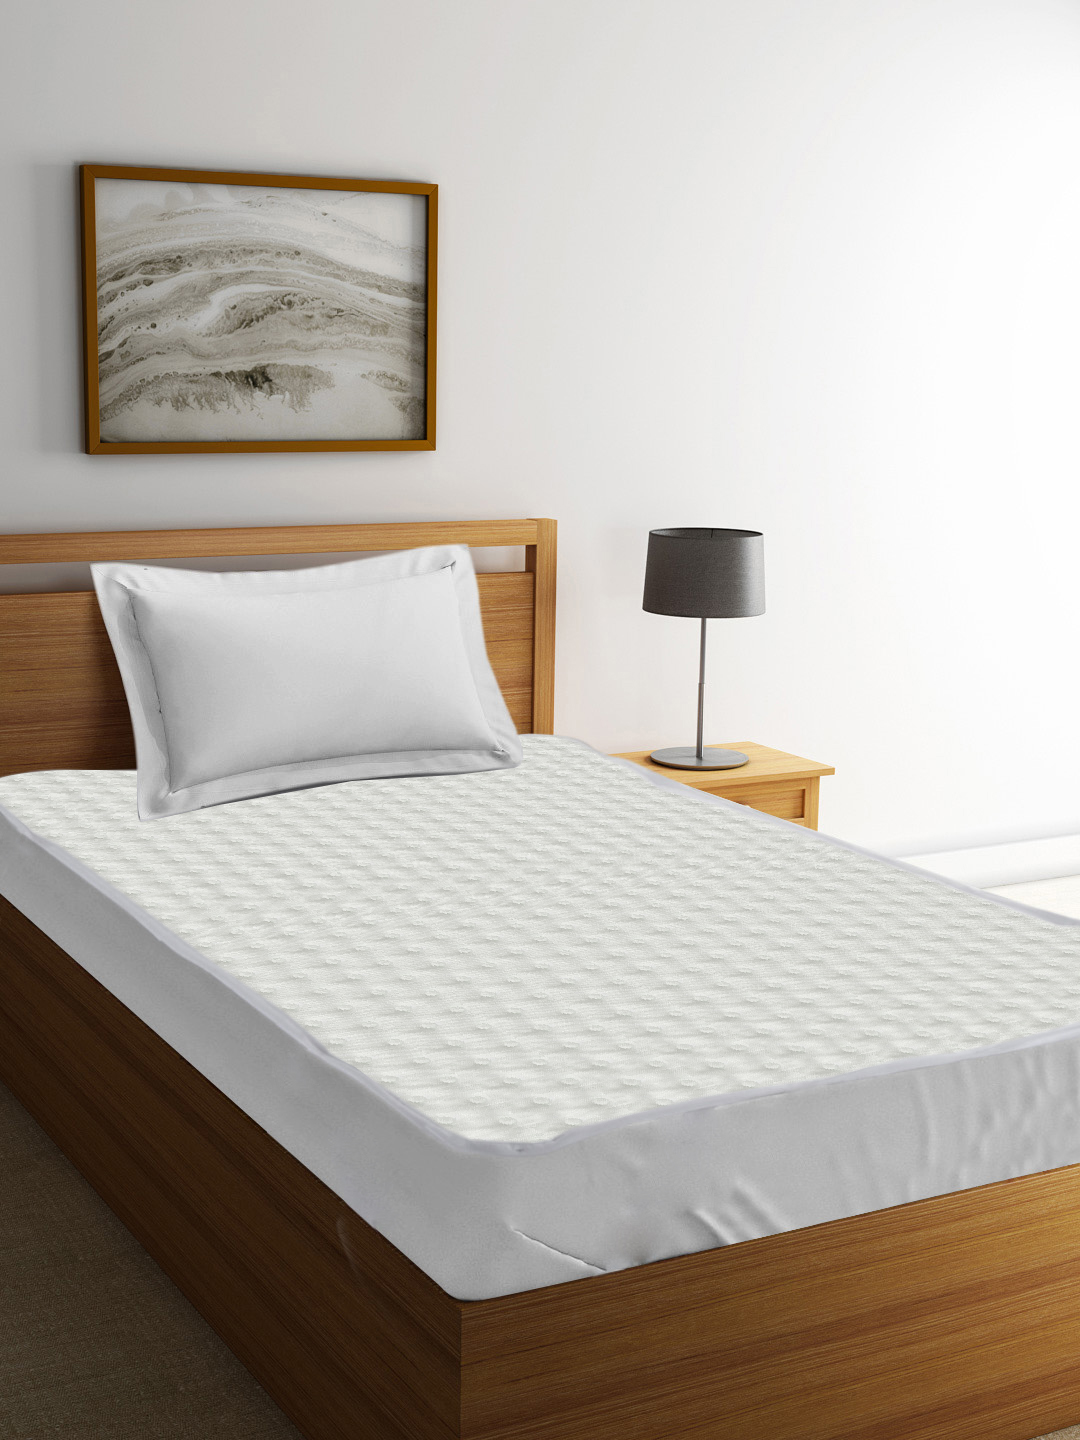 Mattress Protectors in White Colour by Tangerine